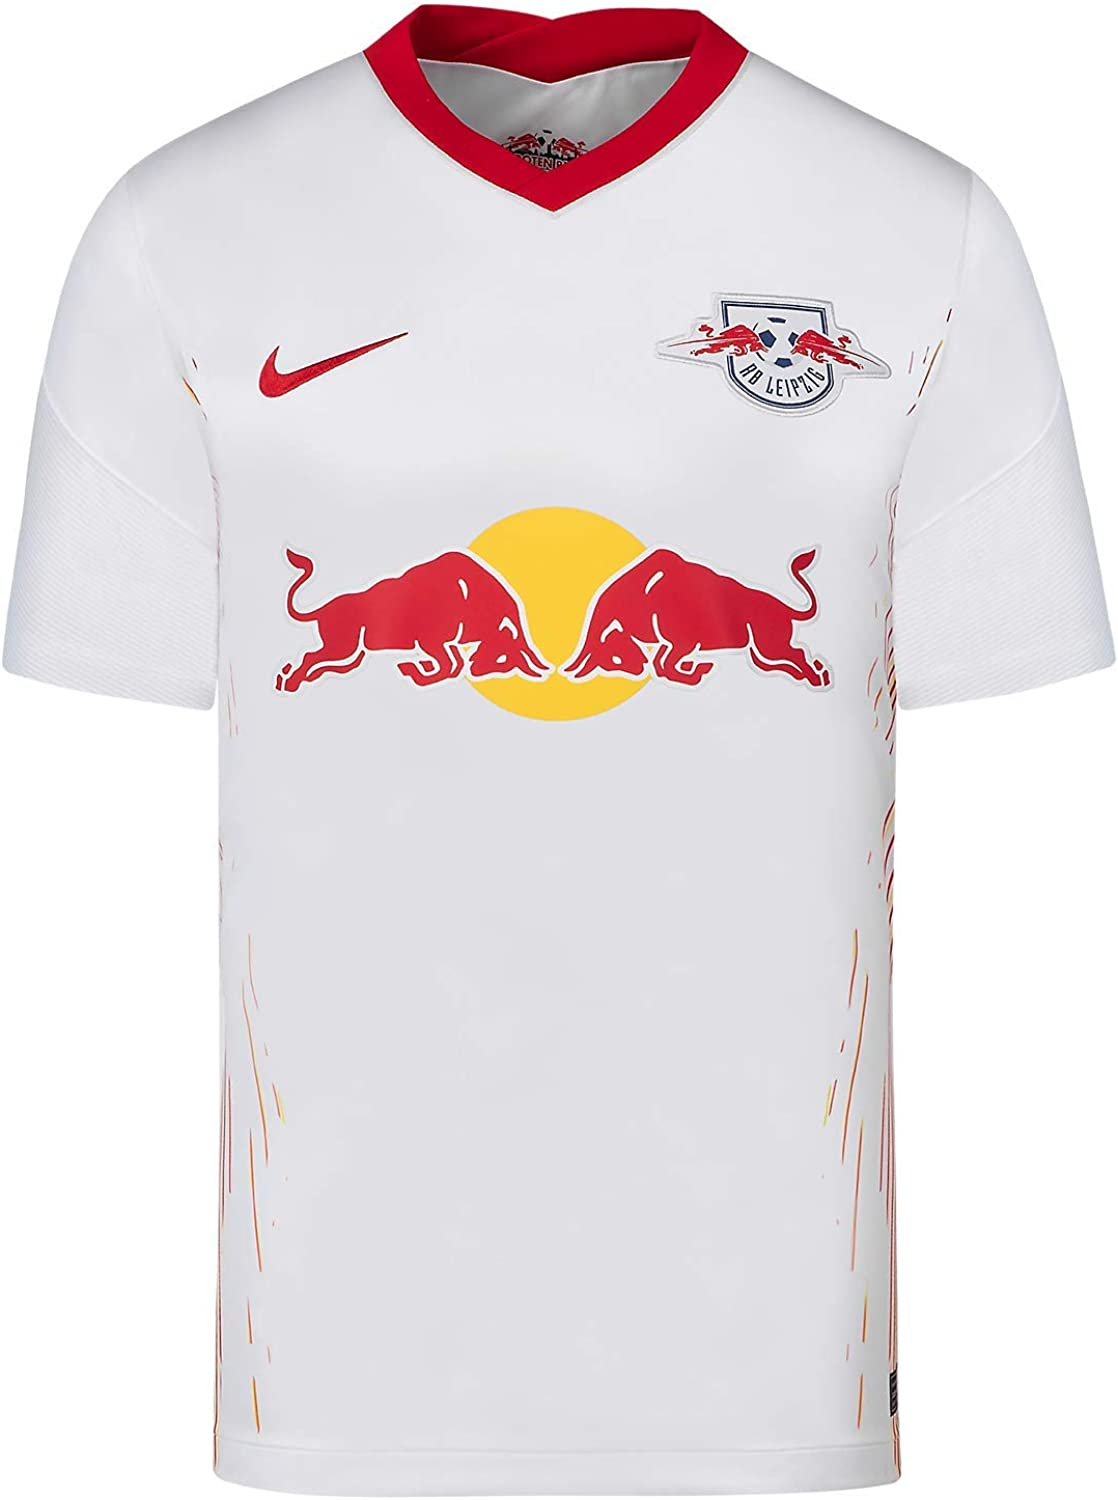 RB Leipzig Home Camiseta 20/21, Niños - Official Merchandise: Amazon.es: Ropa y accesorios